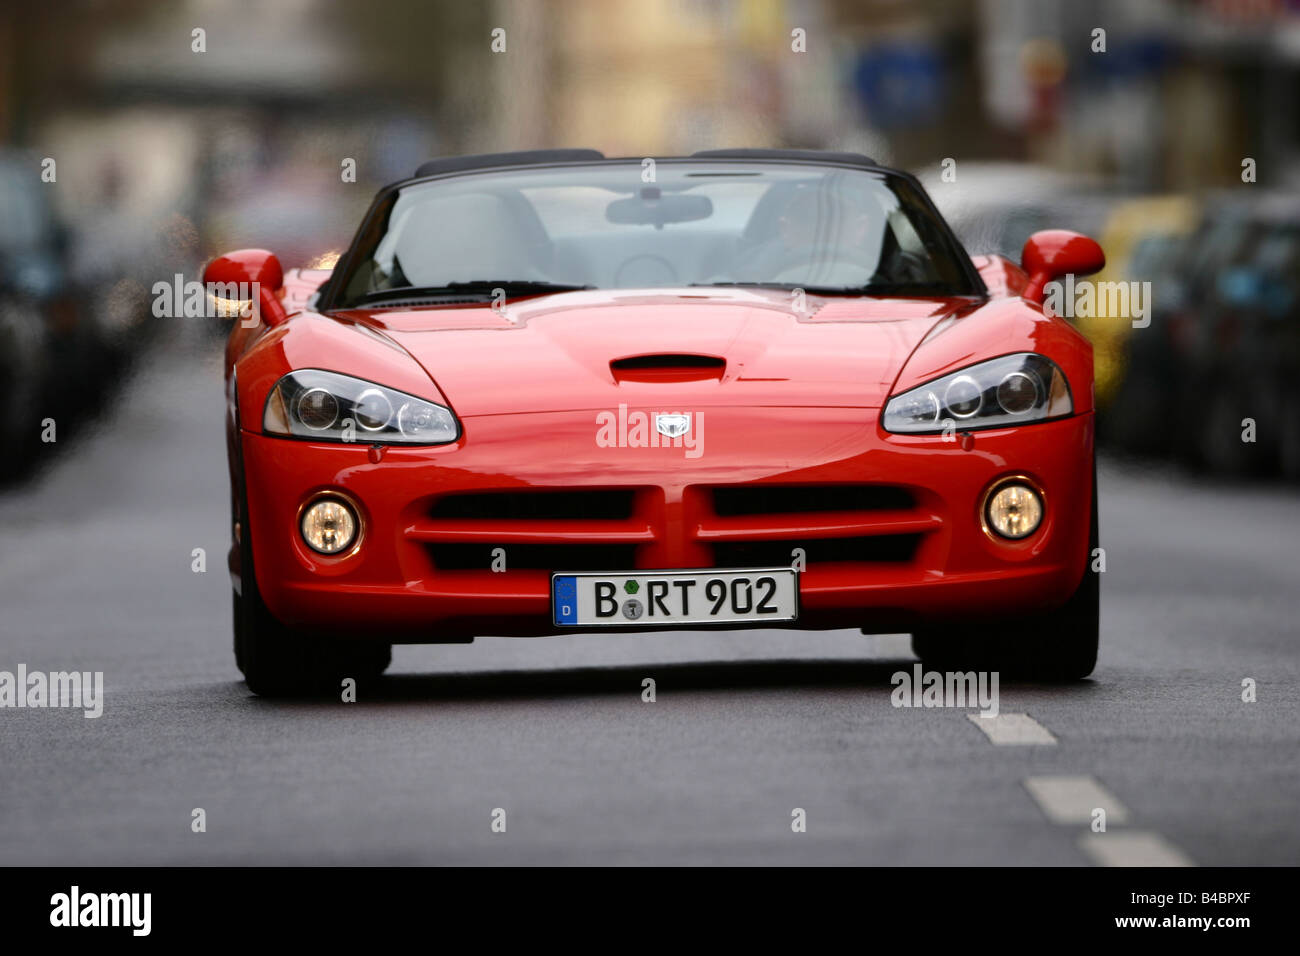 Car, Dodge Viper SRT-10, Convertible, model year 2003-, red, FGHDS, open top, driving, frontal view, City - Stock Image